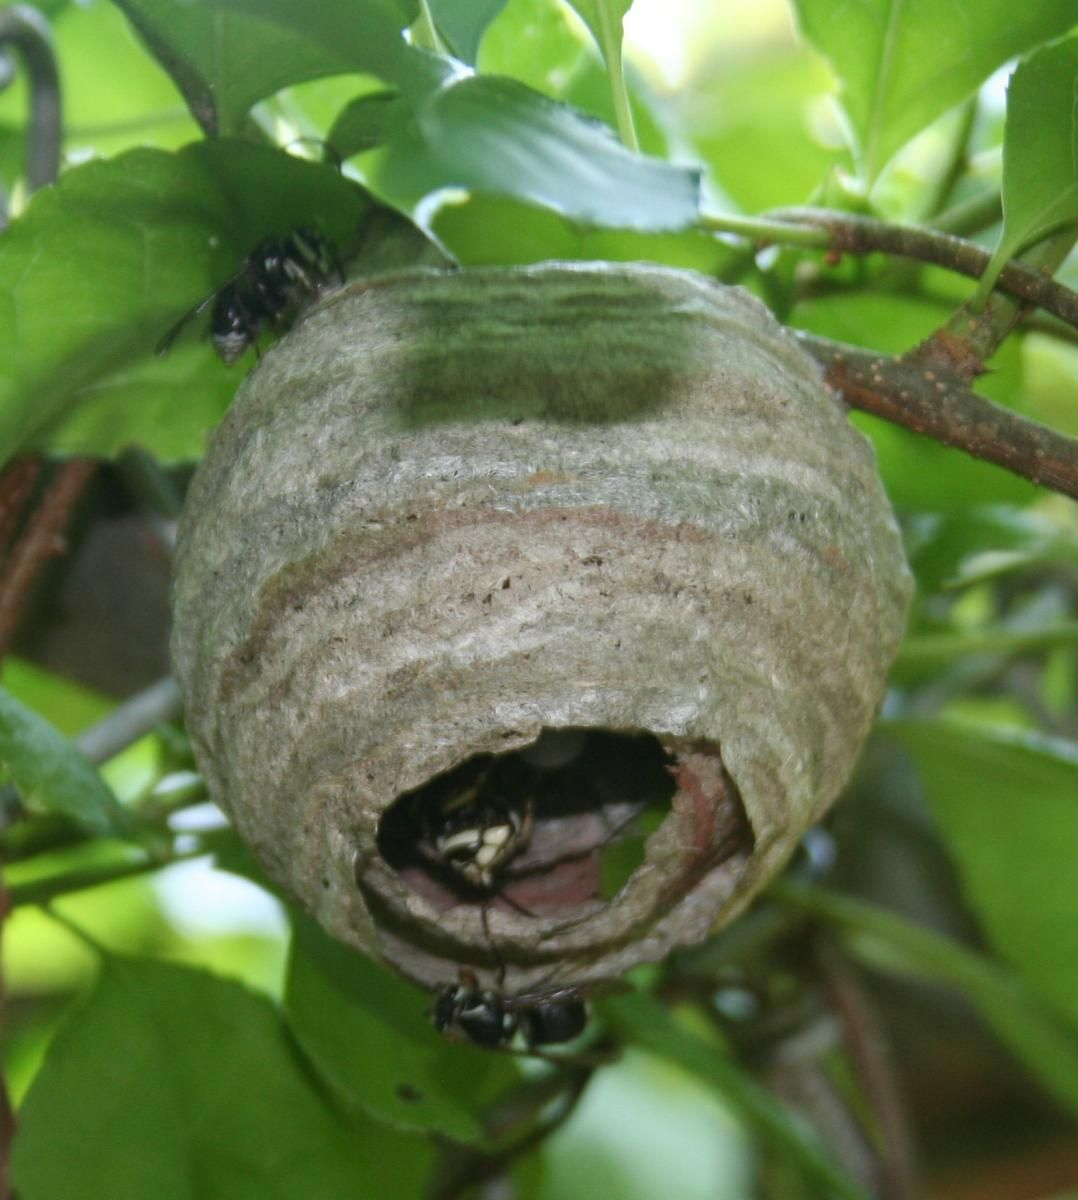 Baldfaced! We have had wasp nests in our